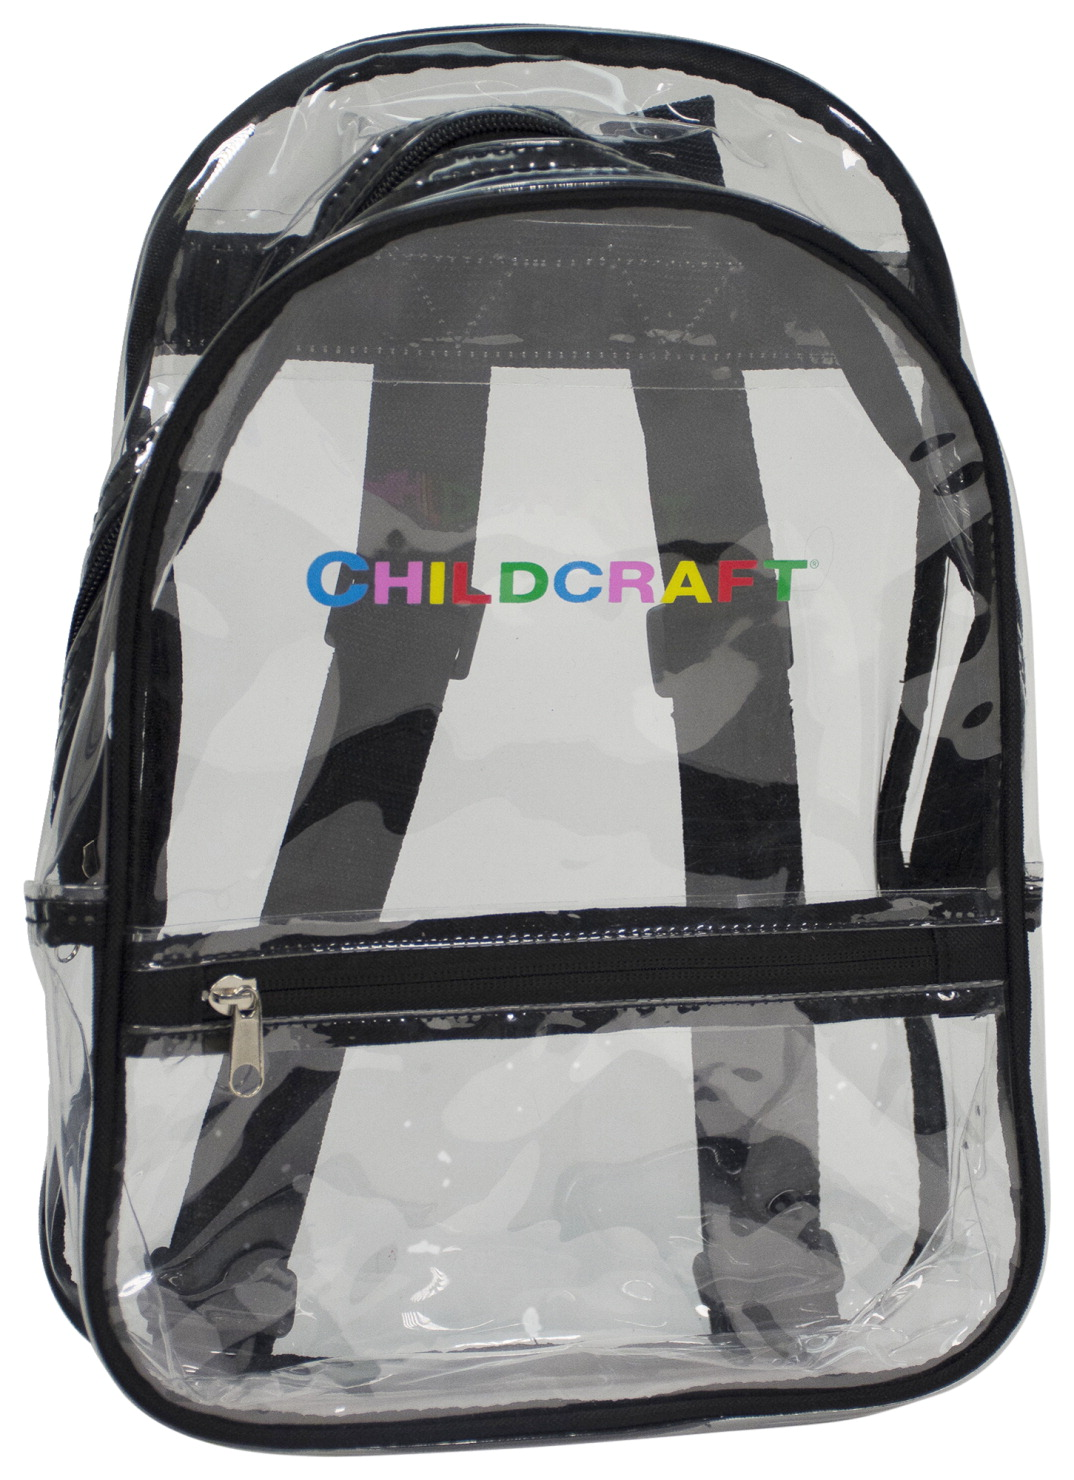 Childcraft Backpack, Clear, Large